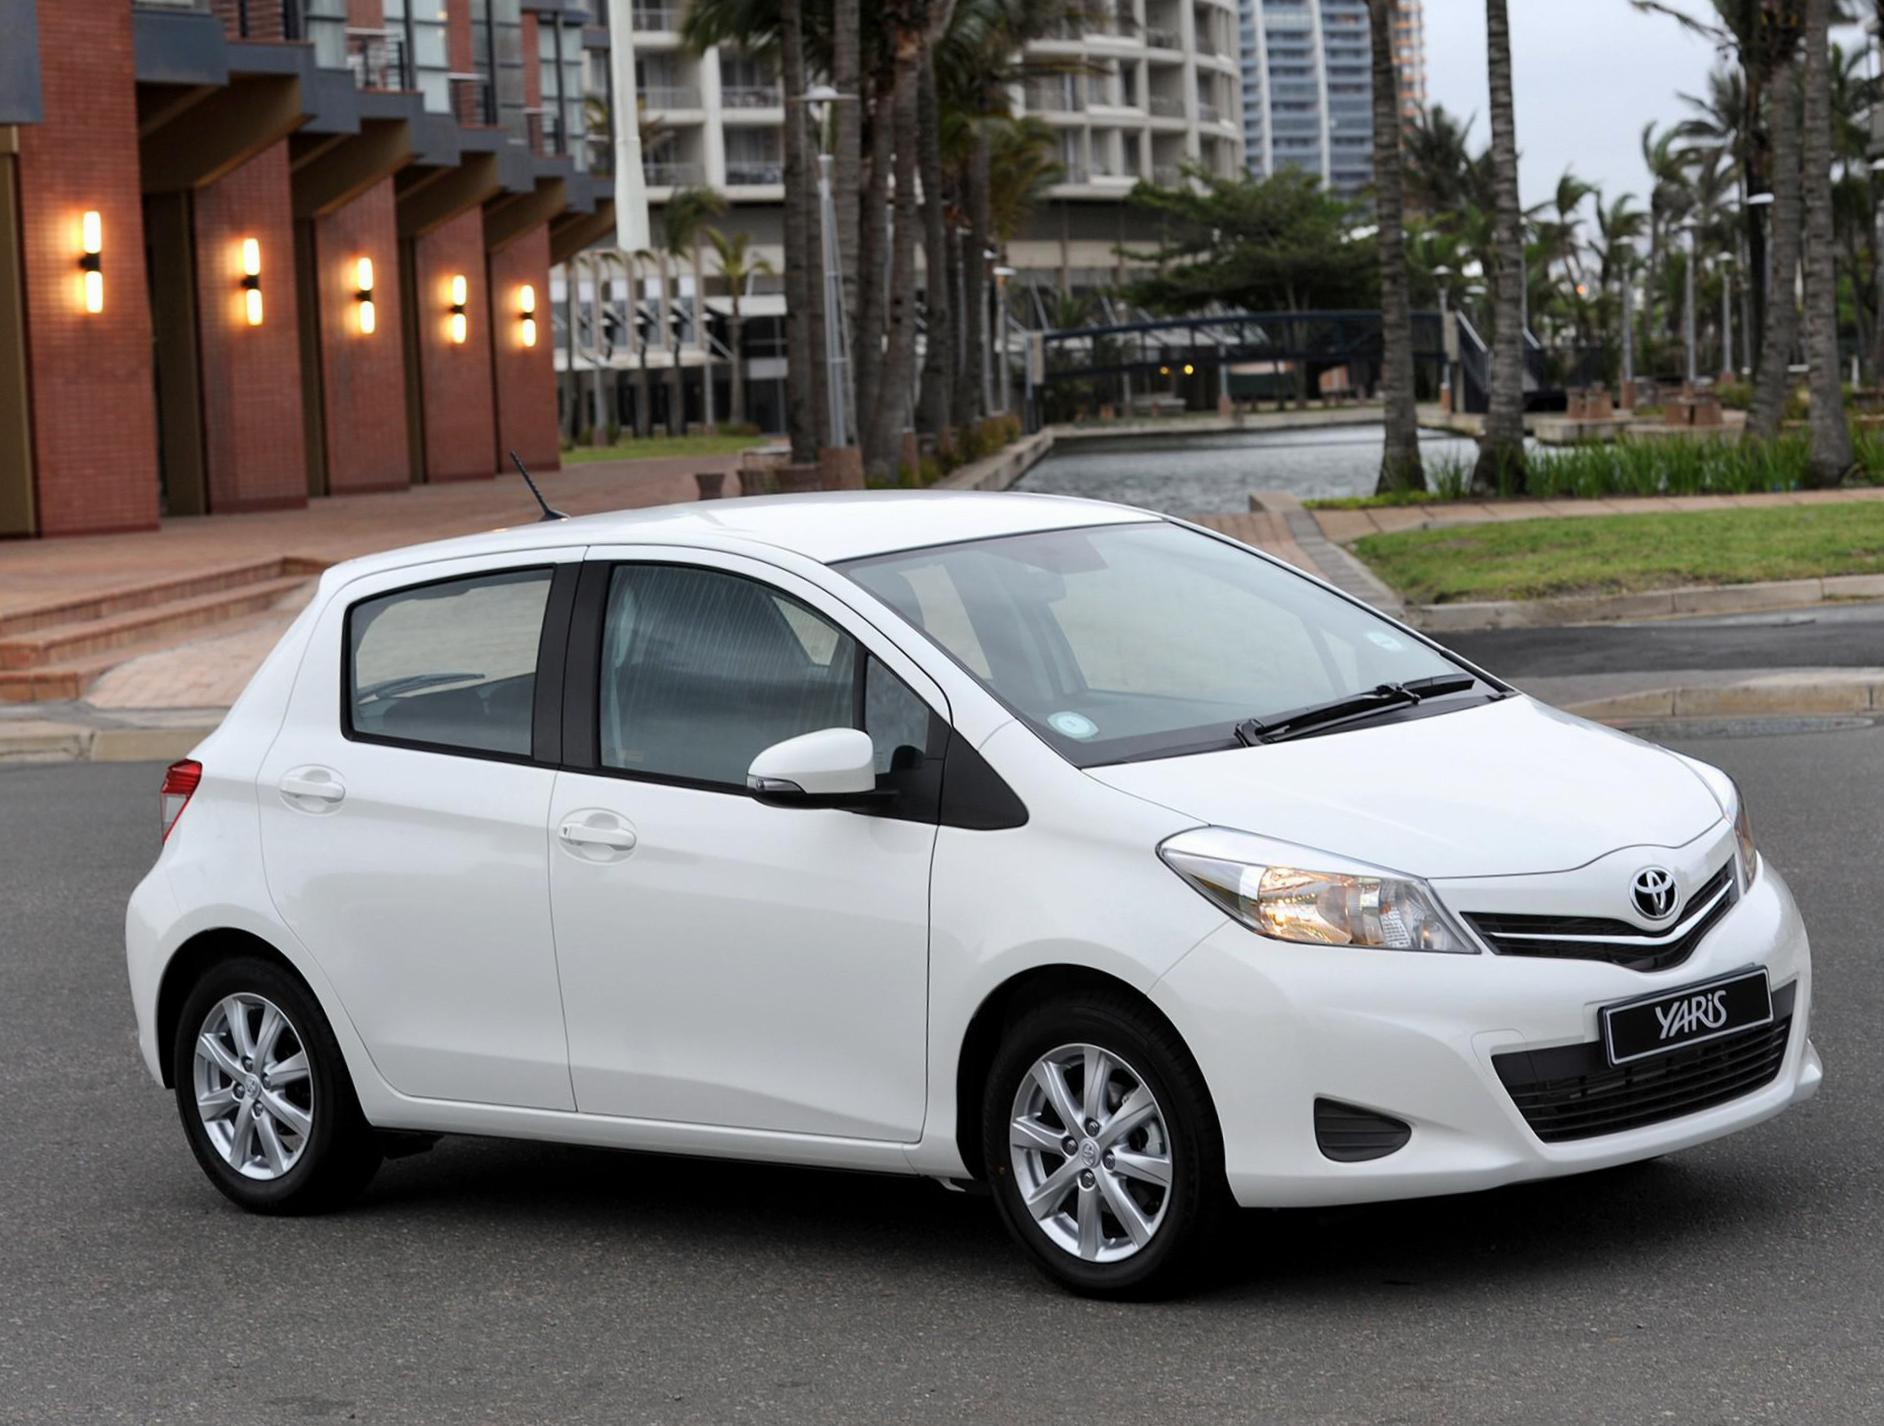 Toyota Yaris 5 doors approved hatchback